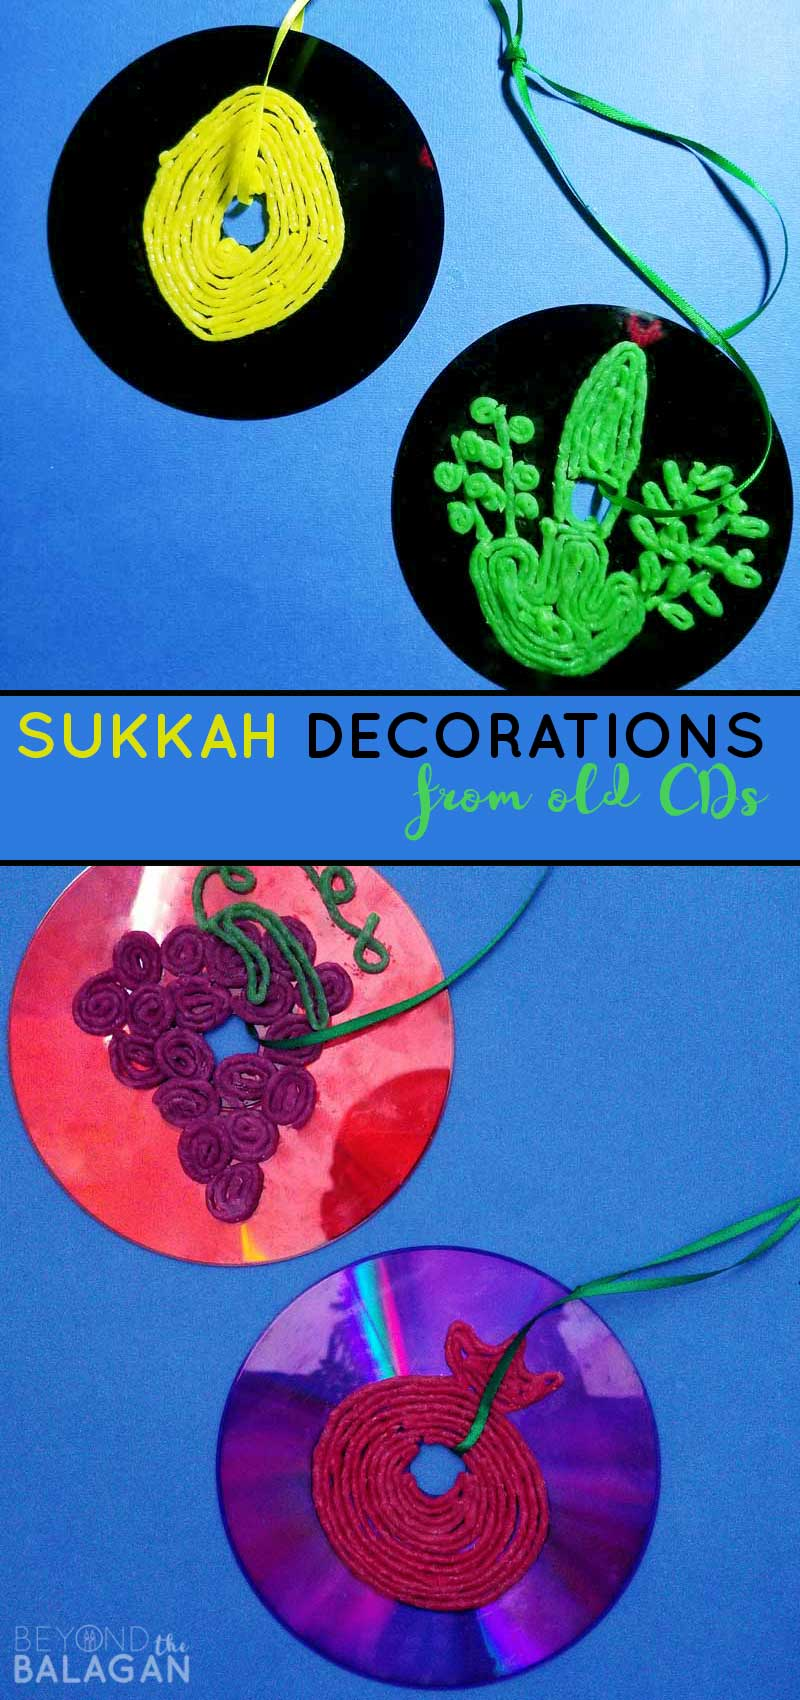 Click to learn how to make these beautiful Sukkah decorations with children from old CDs! They are at least somewhat waterproof, easy and kids and adults, as well as toddlers can make these!